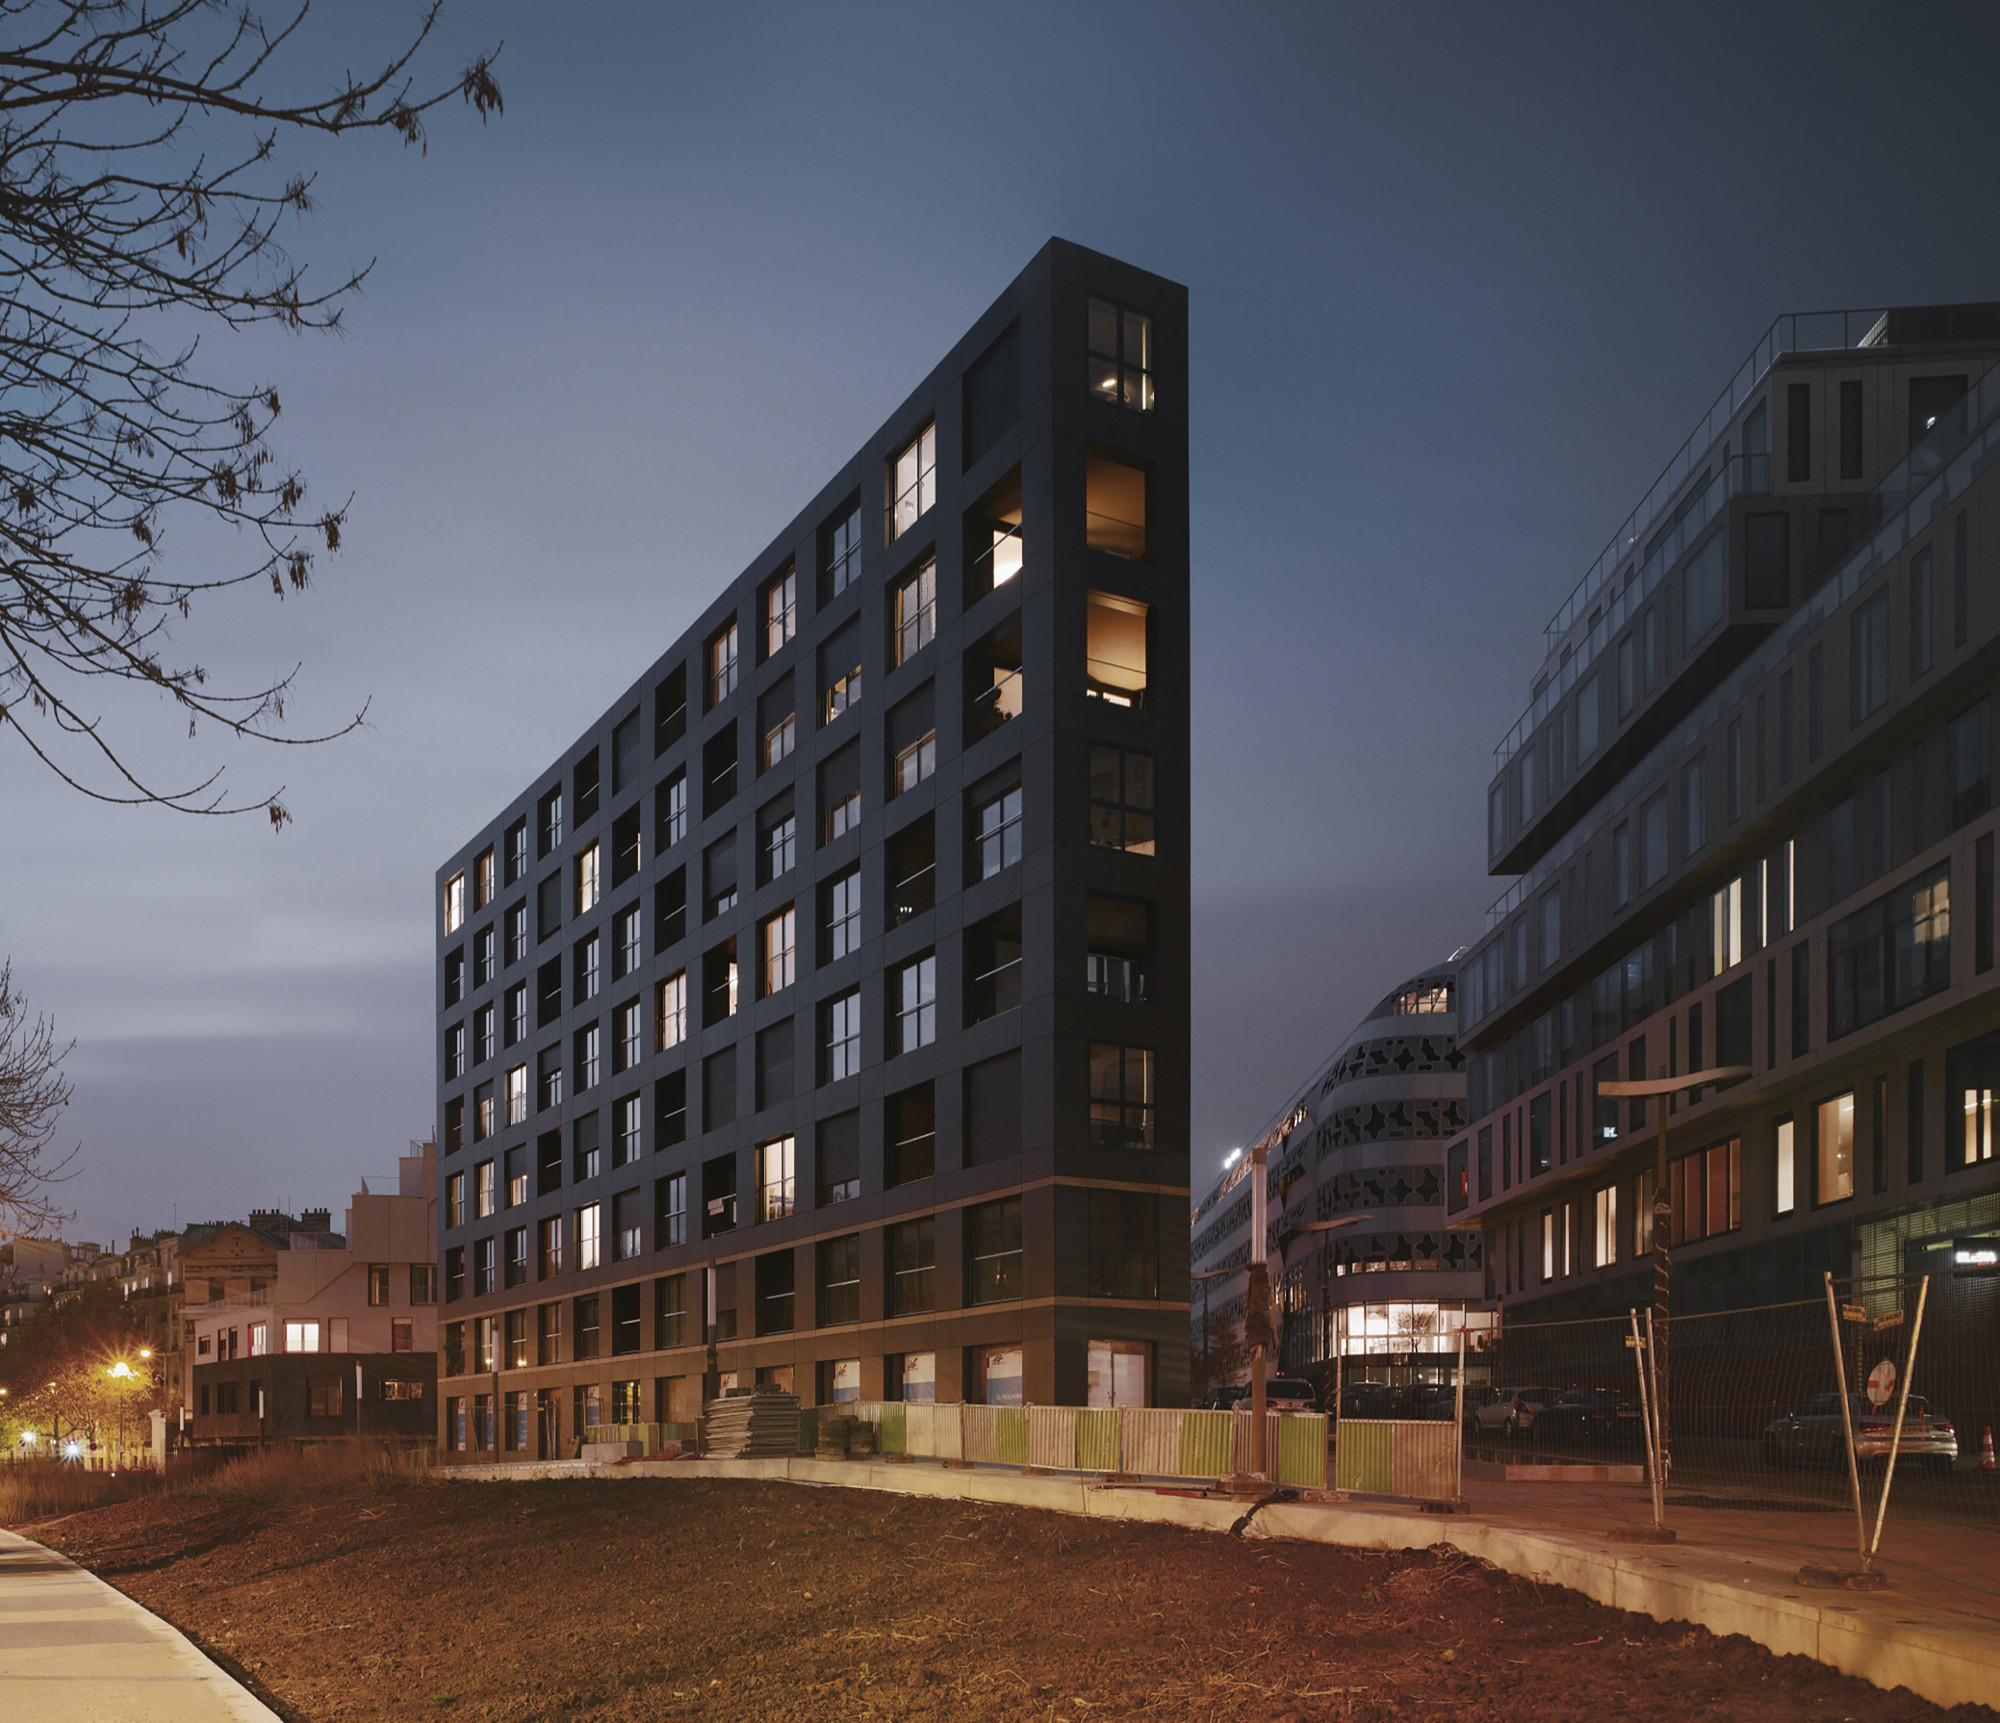 40 Housing Units Lan Architecture Archdaily